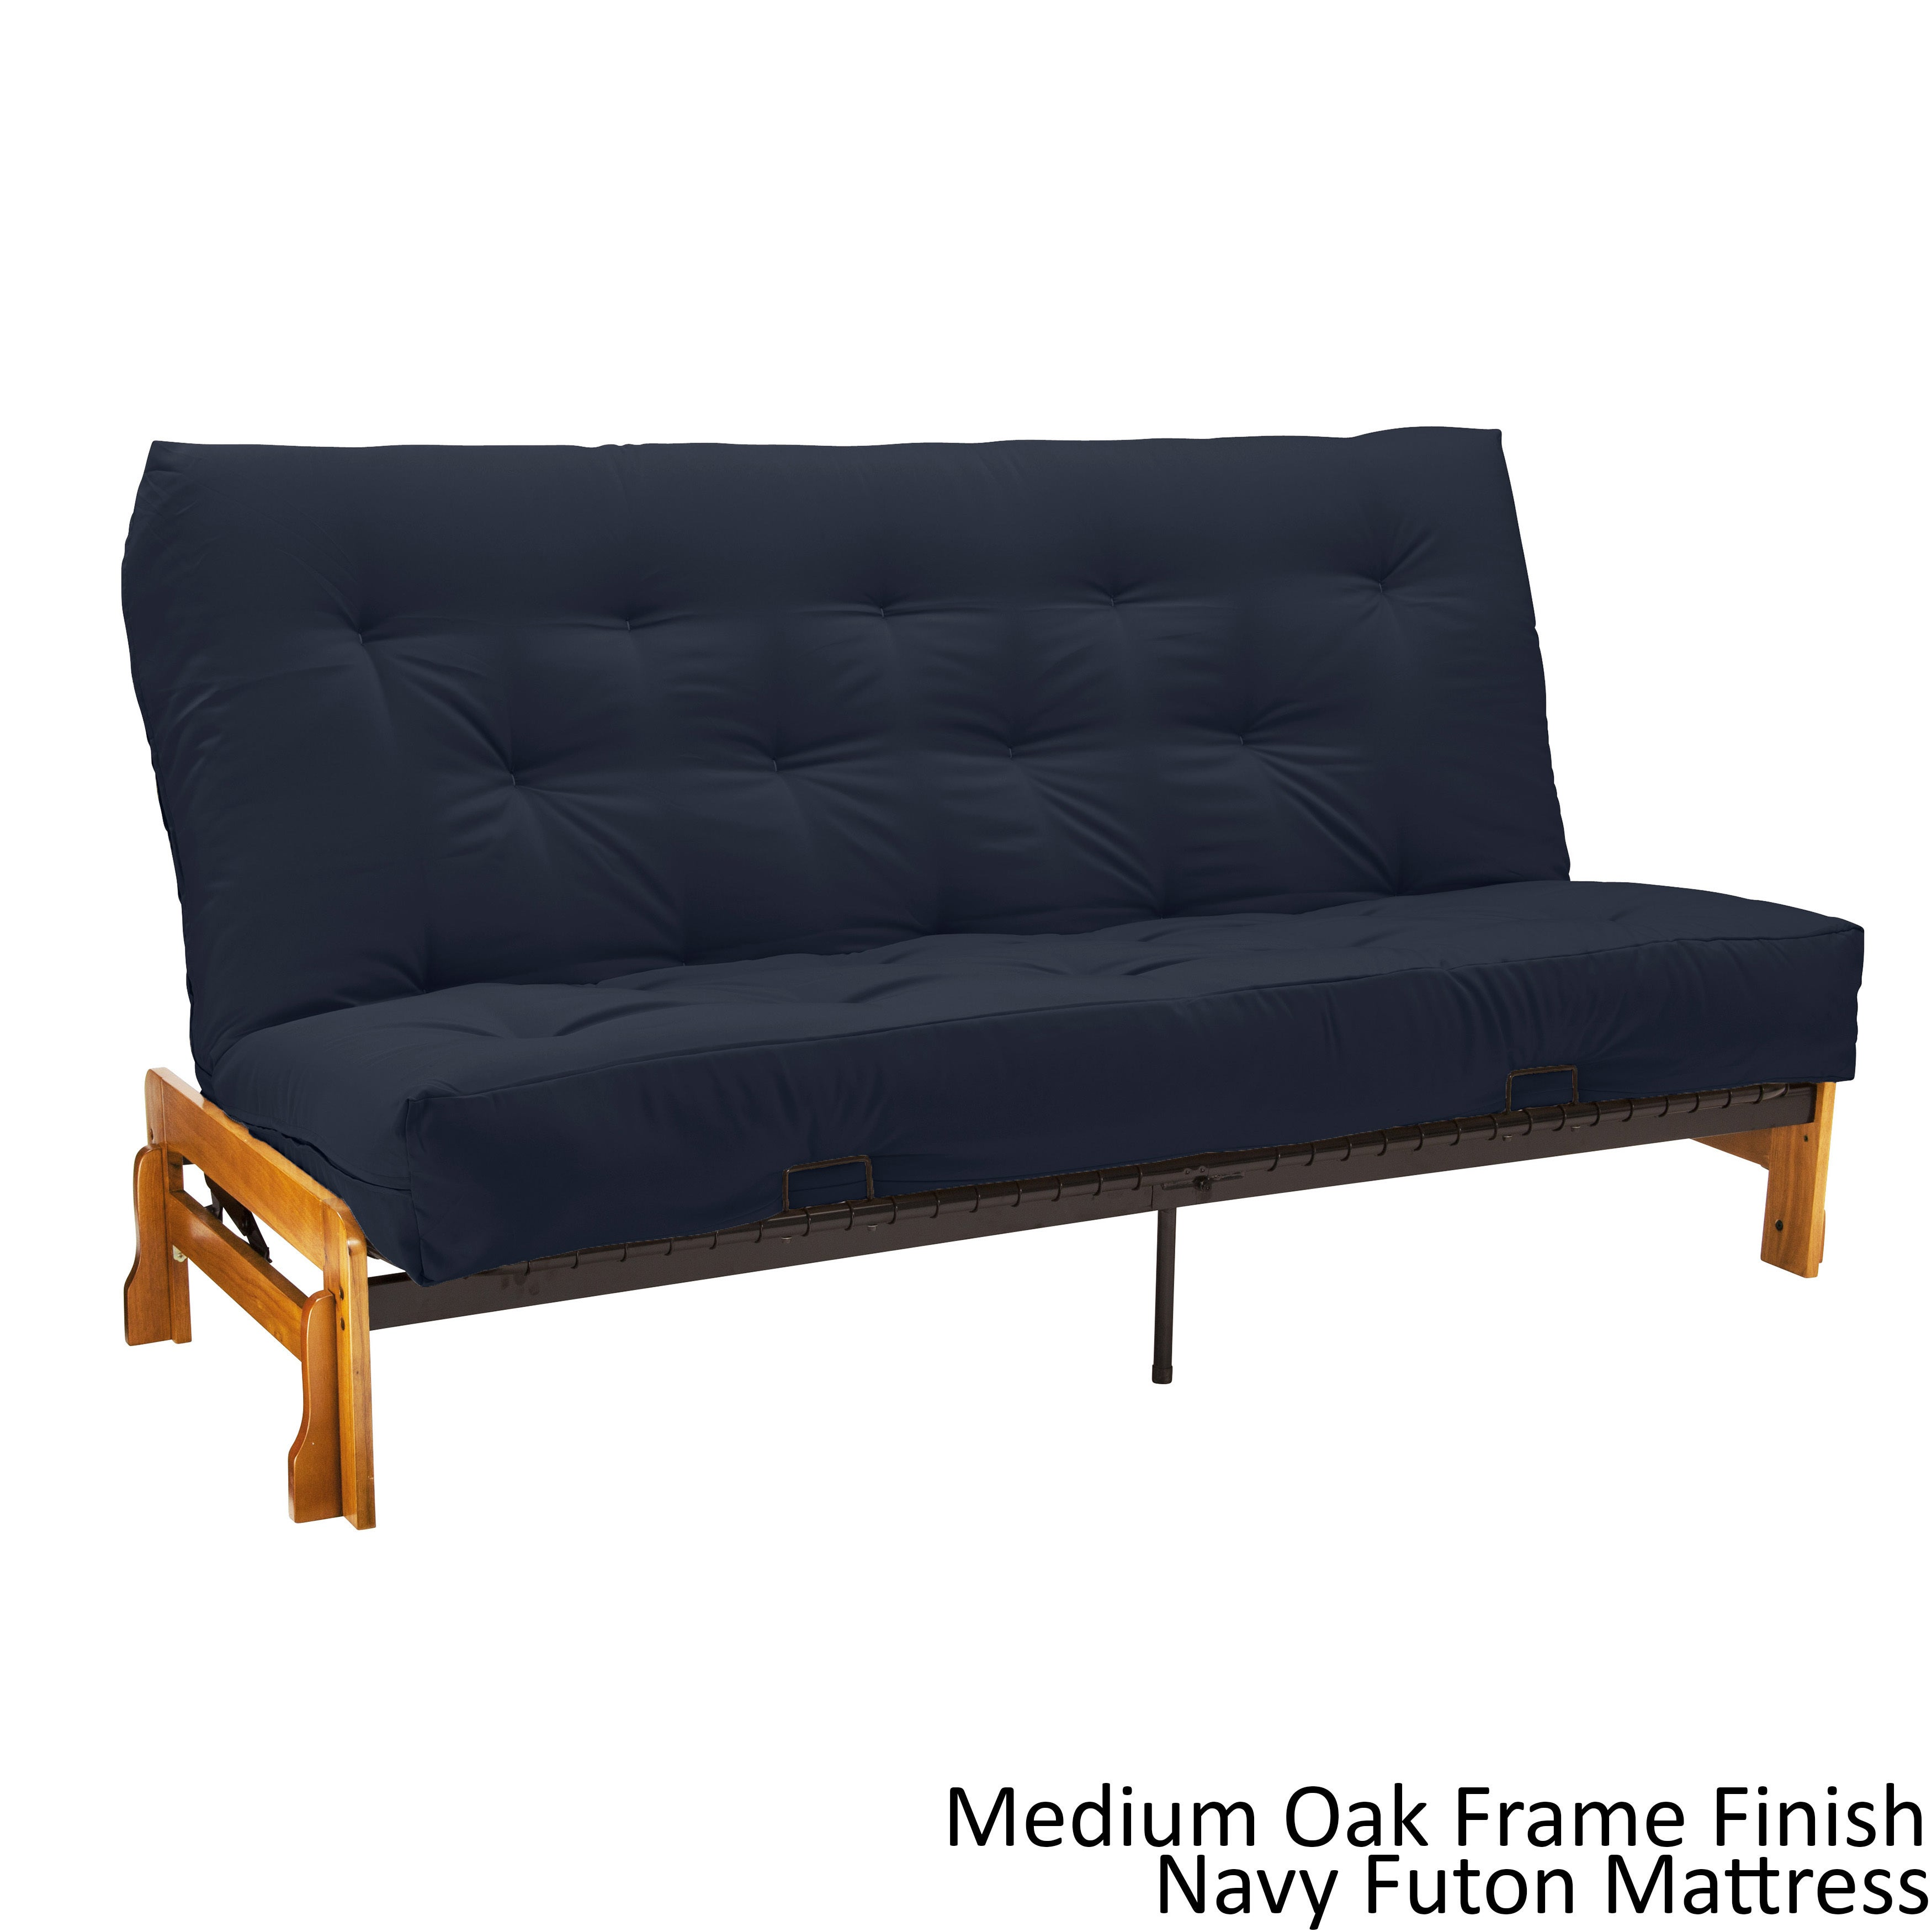 every futon queen dimensions size space for furniture mattress strata a